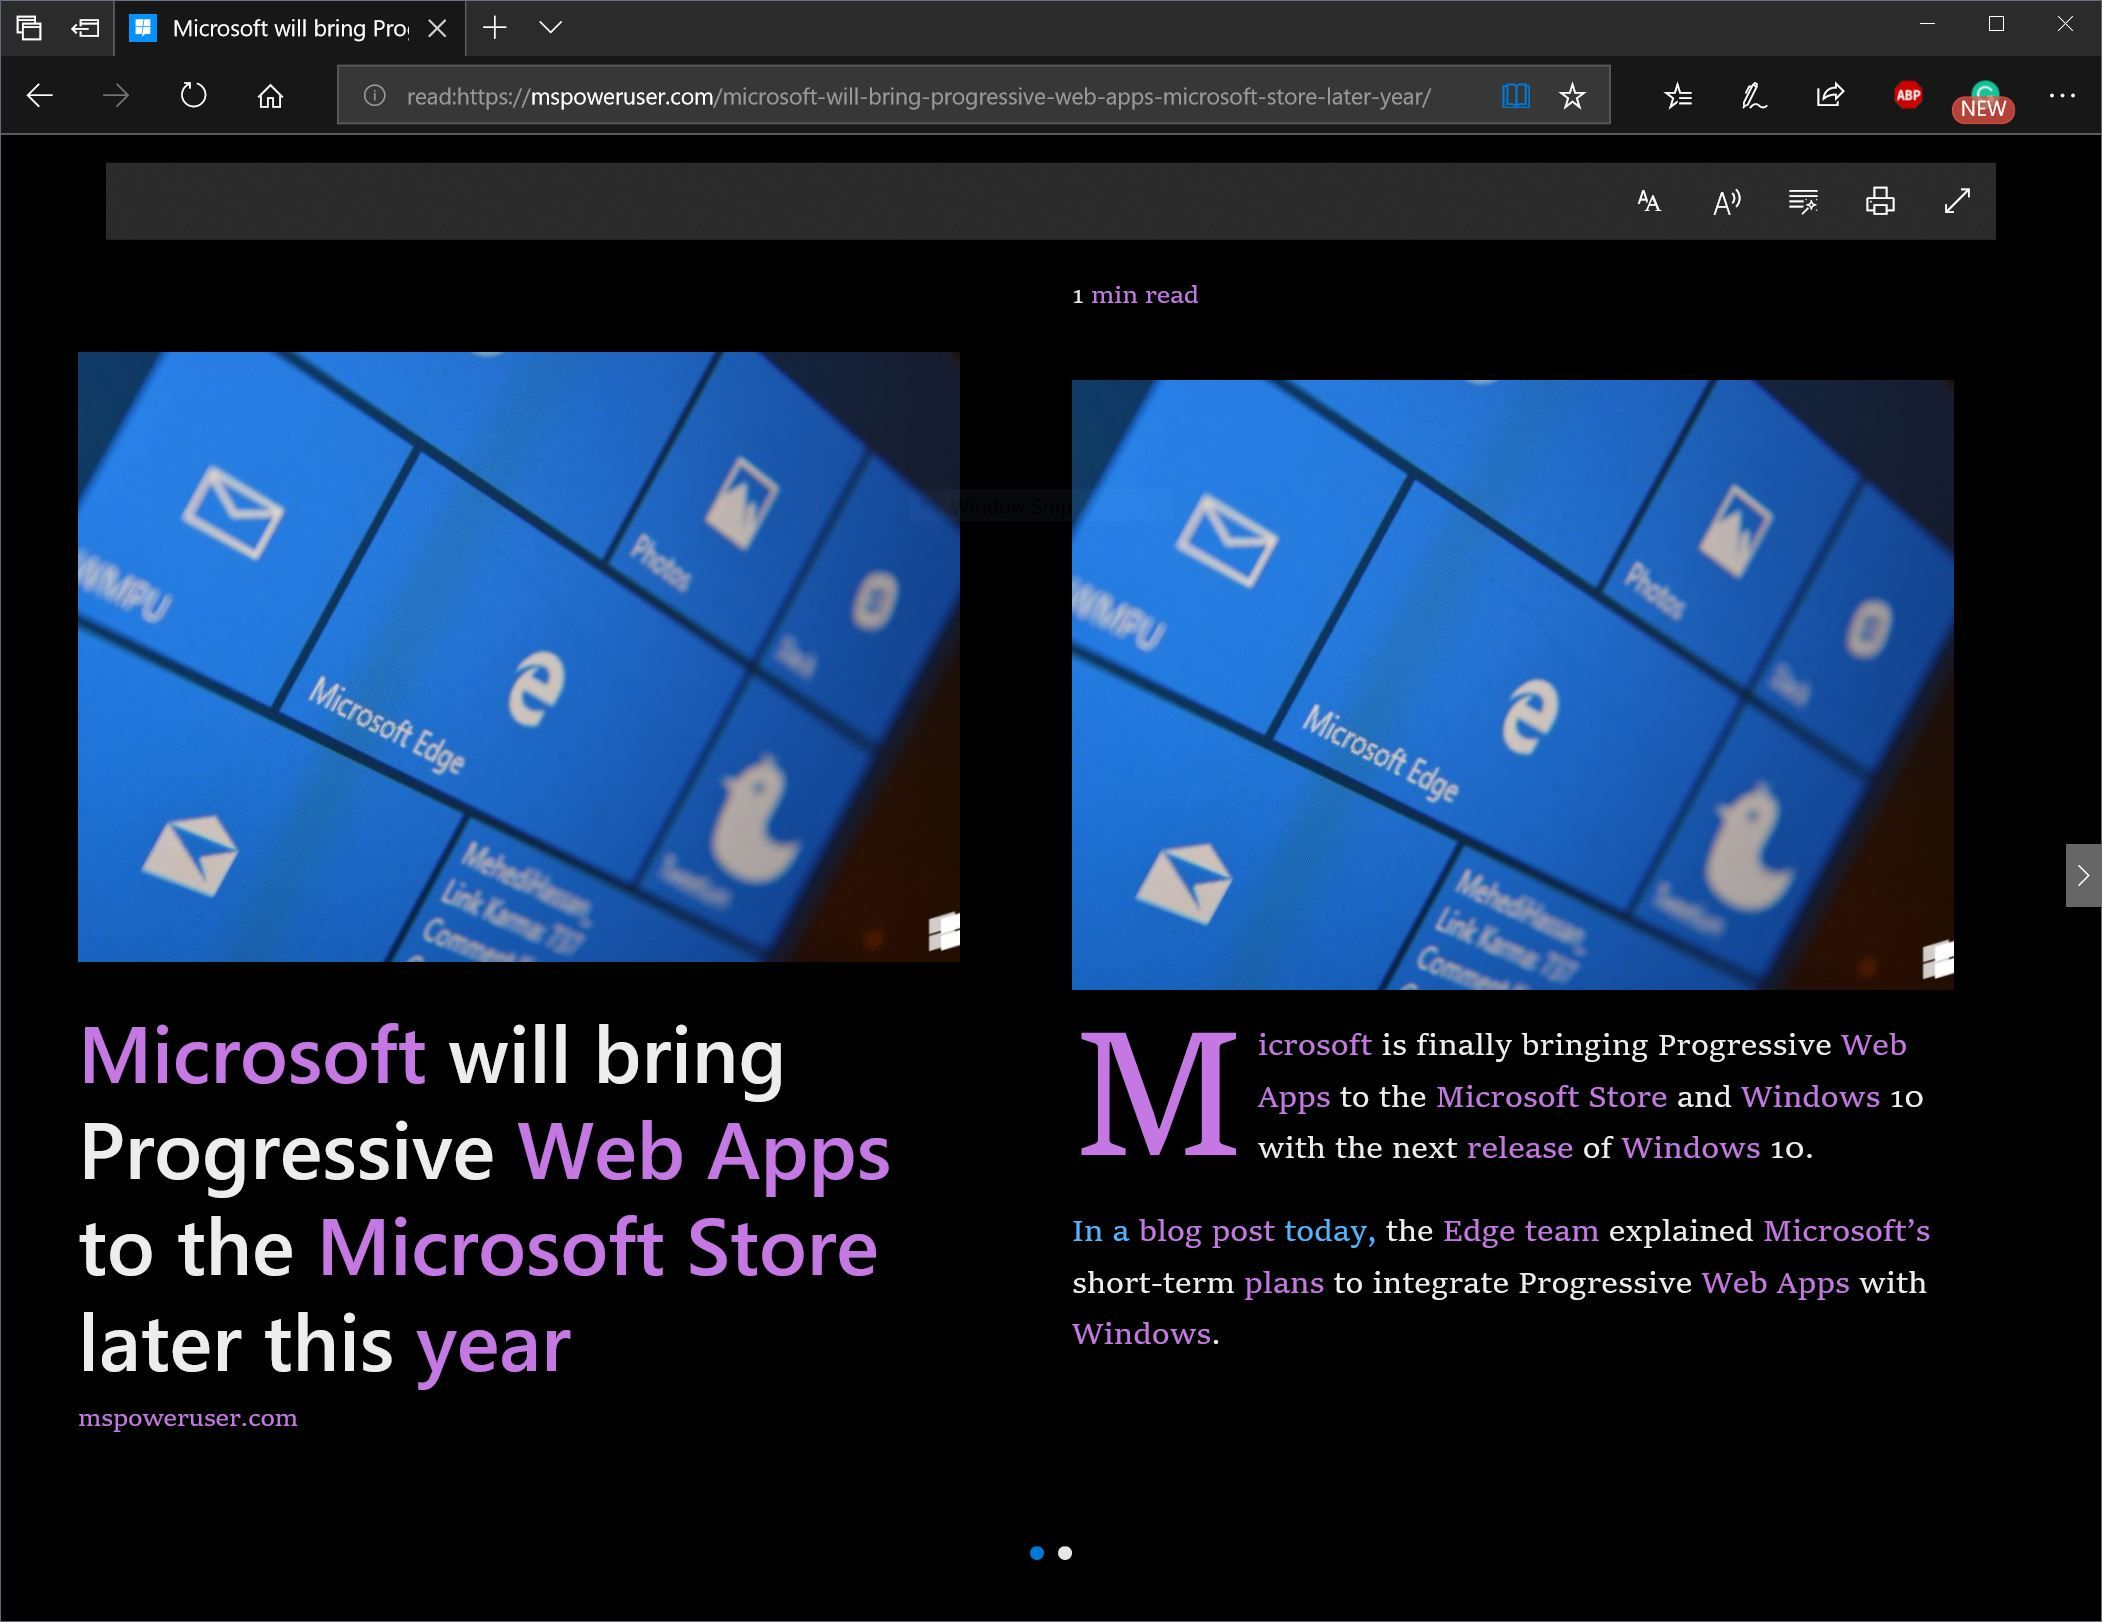 With the launch of Windows 10, Microsoft focused Edge on